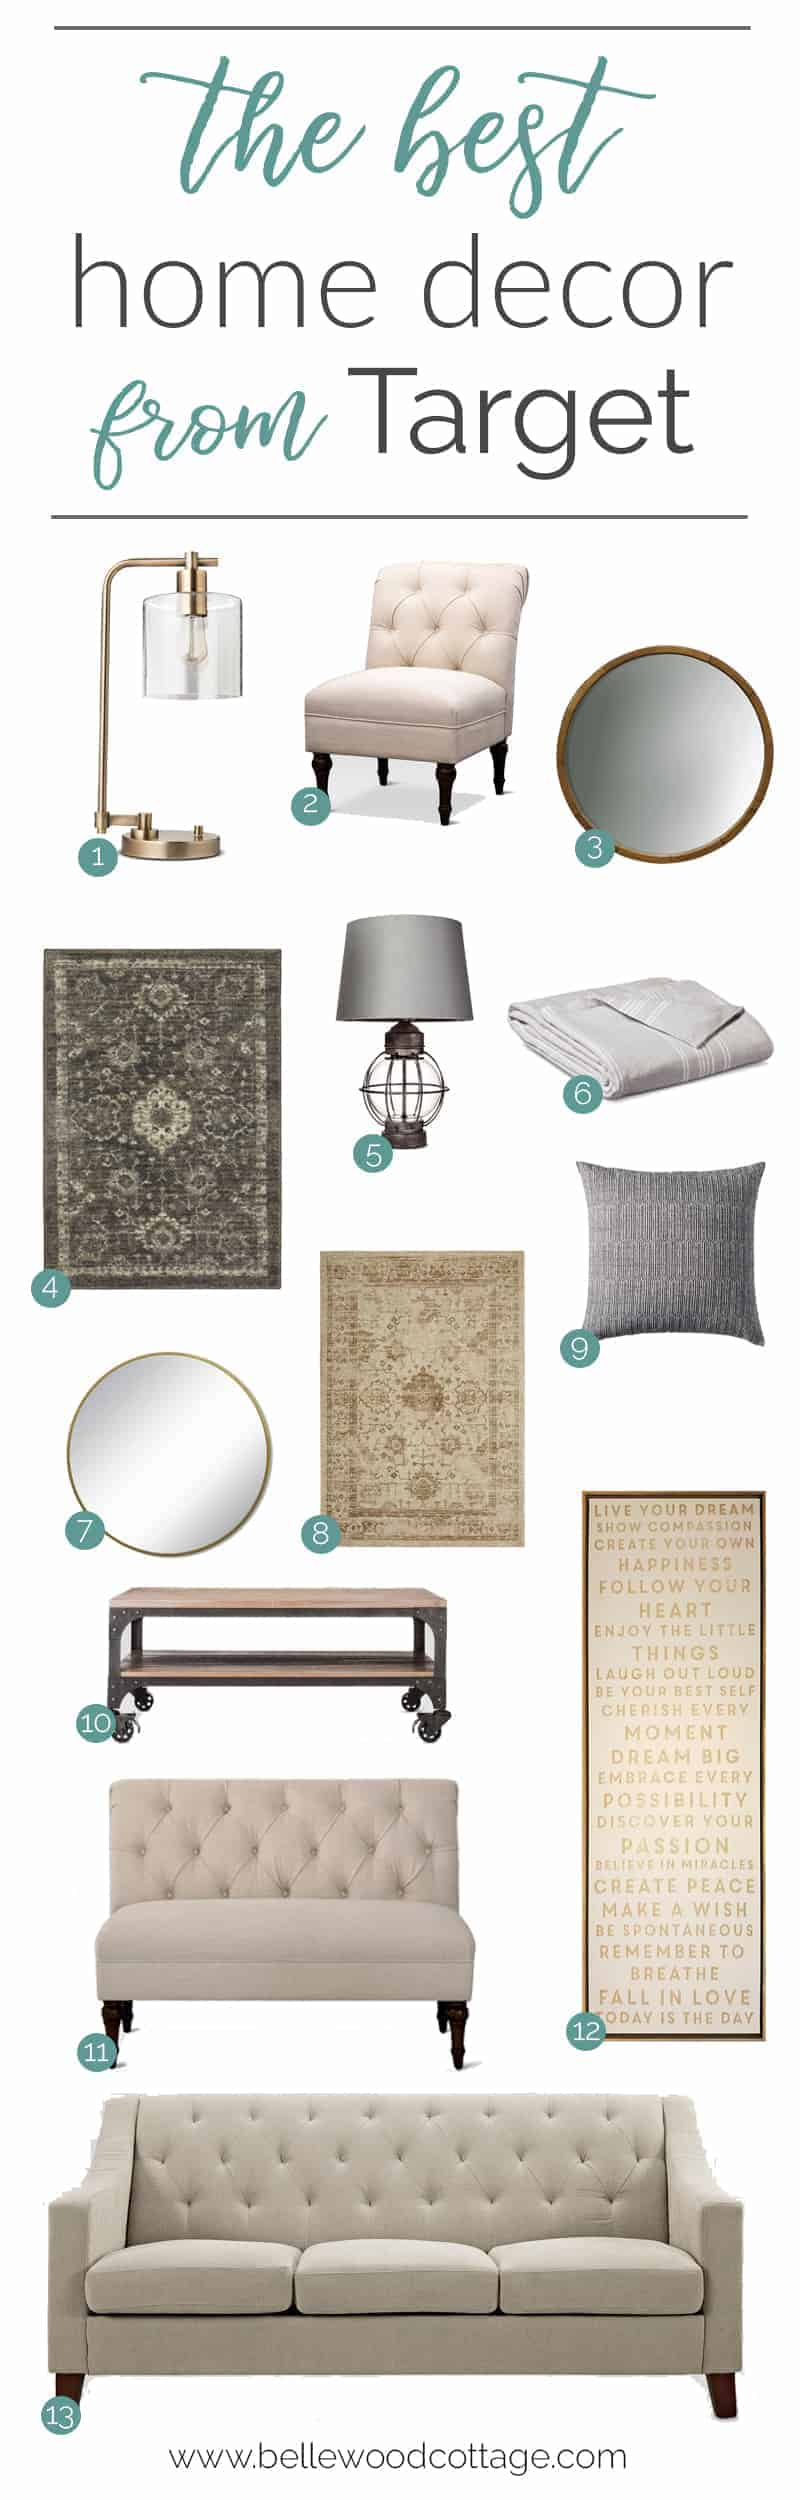 We all love to shop at Target, am I right? Check out this budget friendly round up of some of Target's best home decor. Curated by Bellewood Cottage.